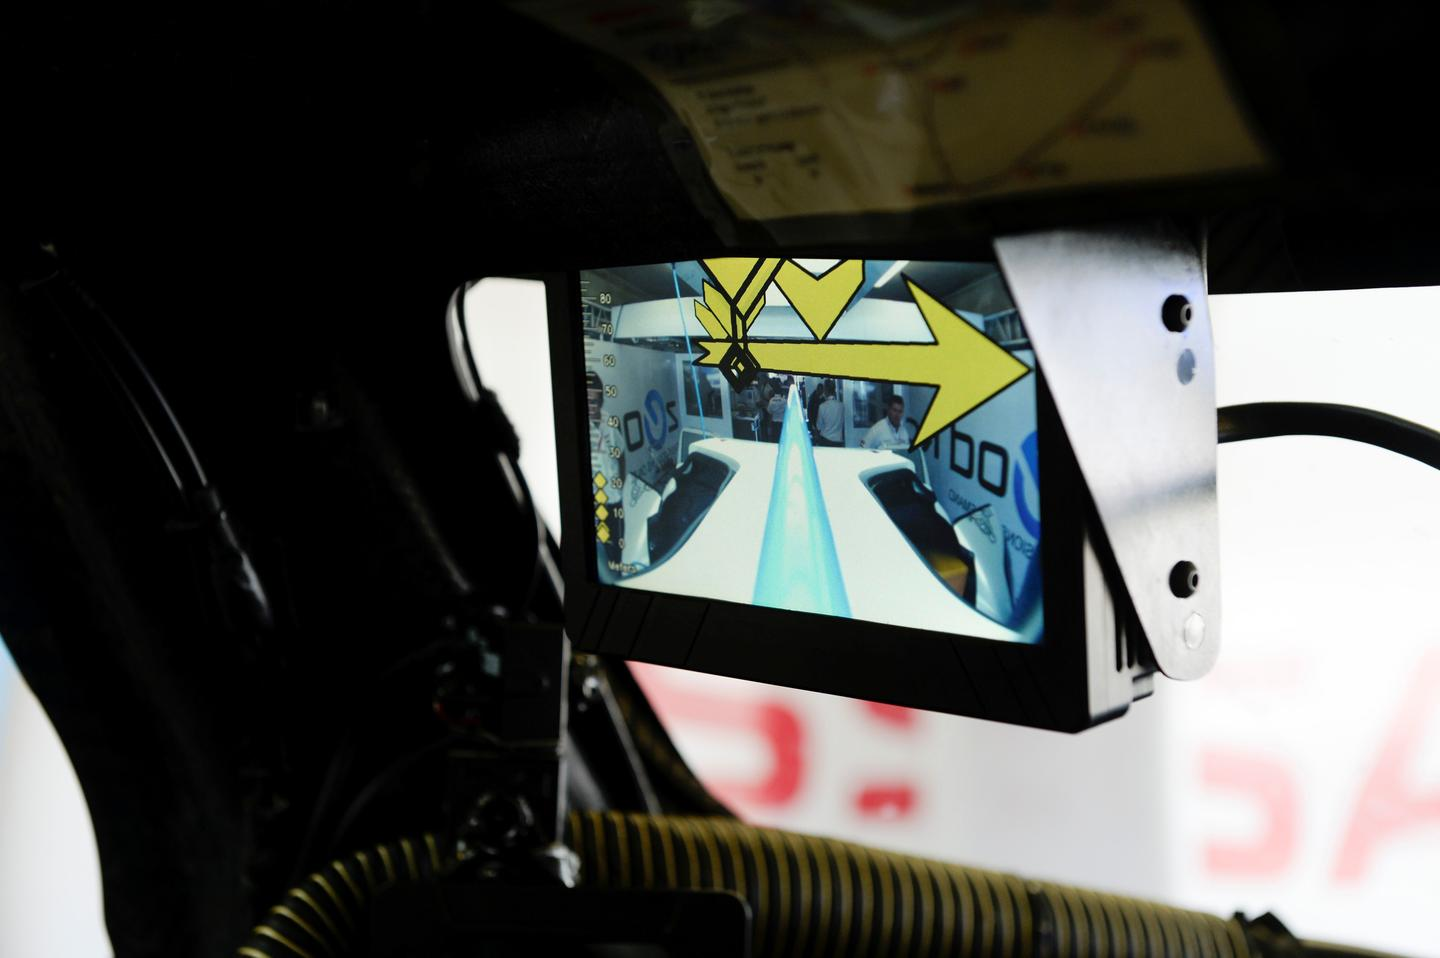 Nissan's ZEOD Racer features a rear facing camera instead of traditional mirrors